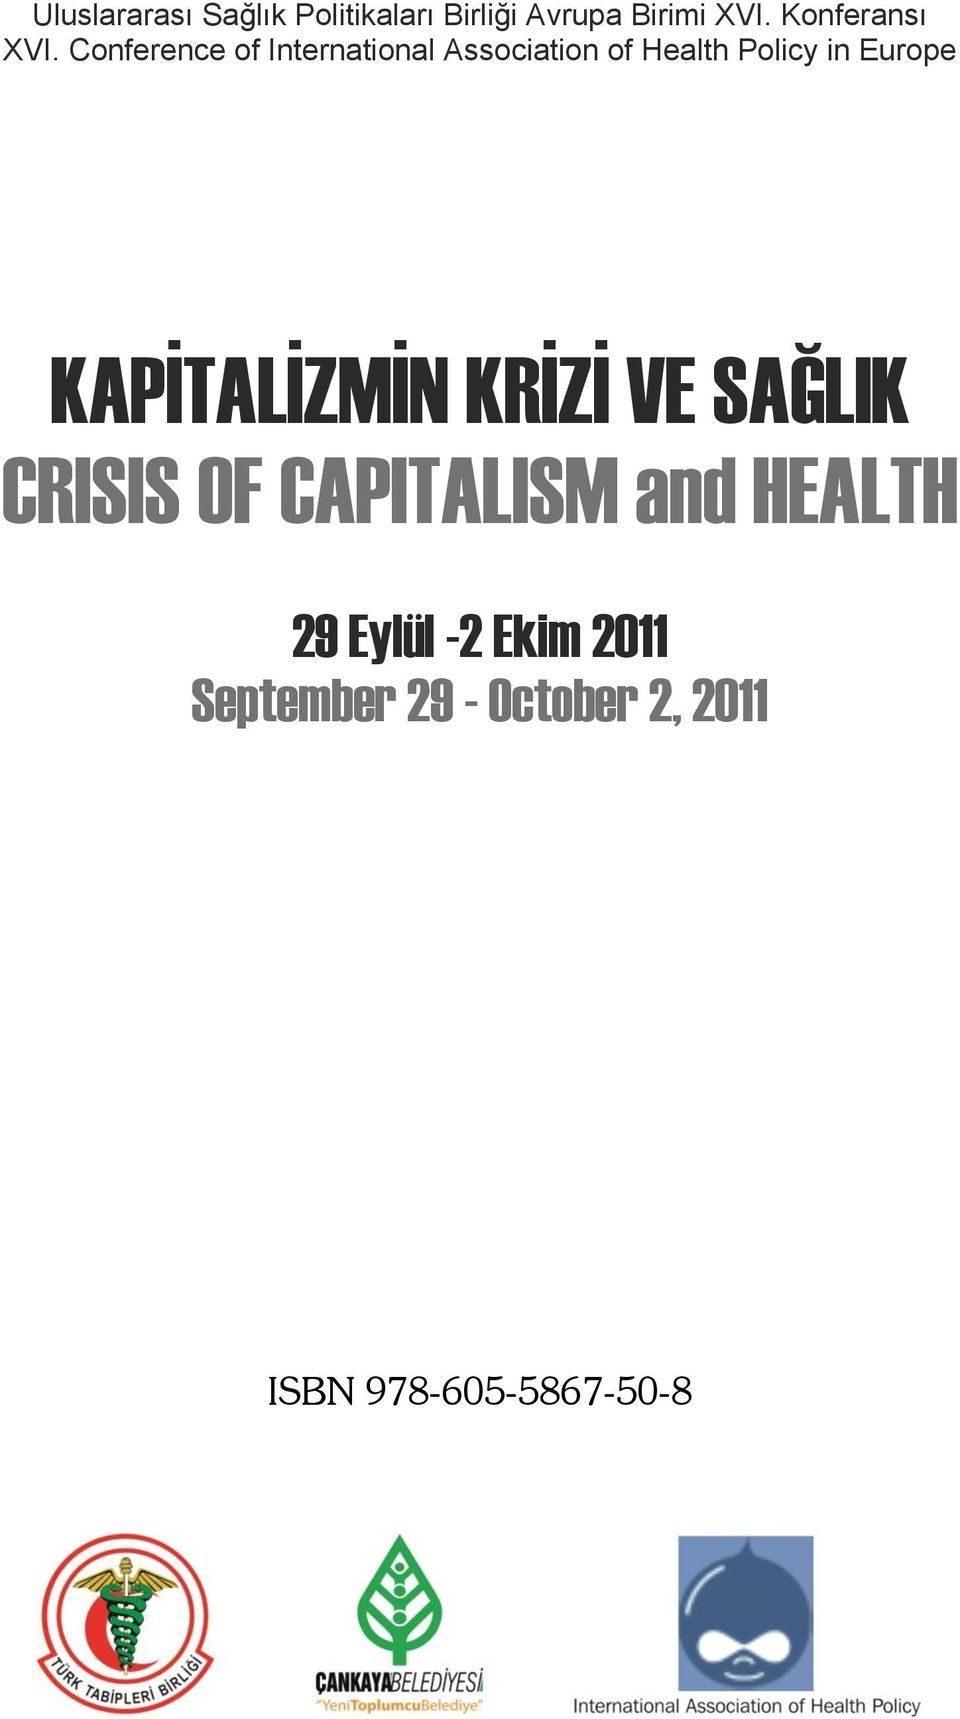 Conference of International Association of Health Policy in Europe